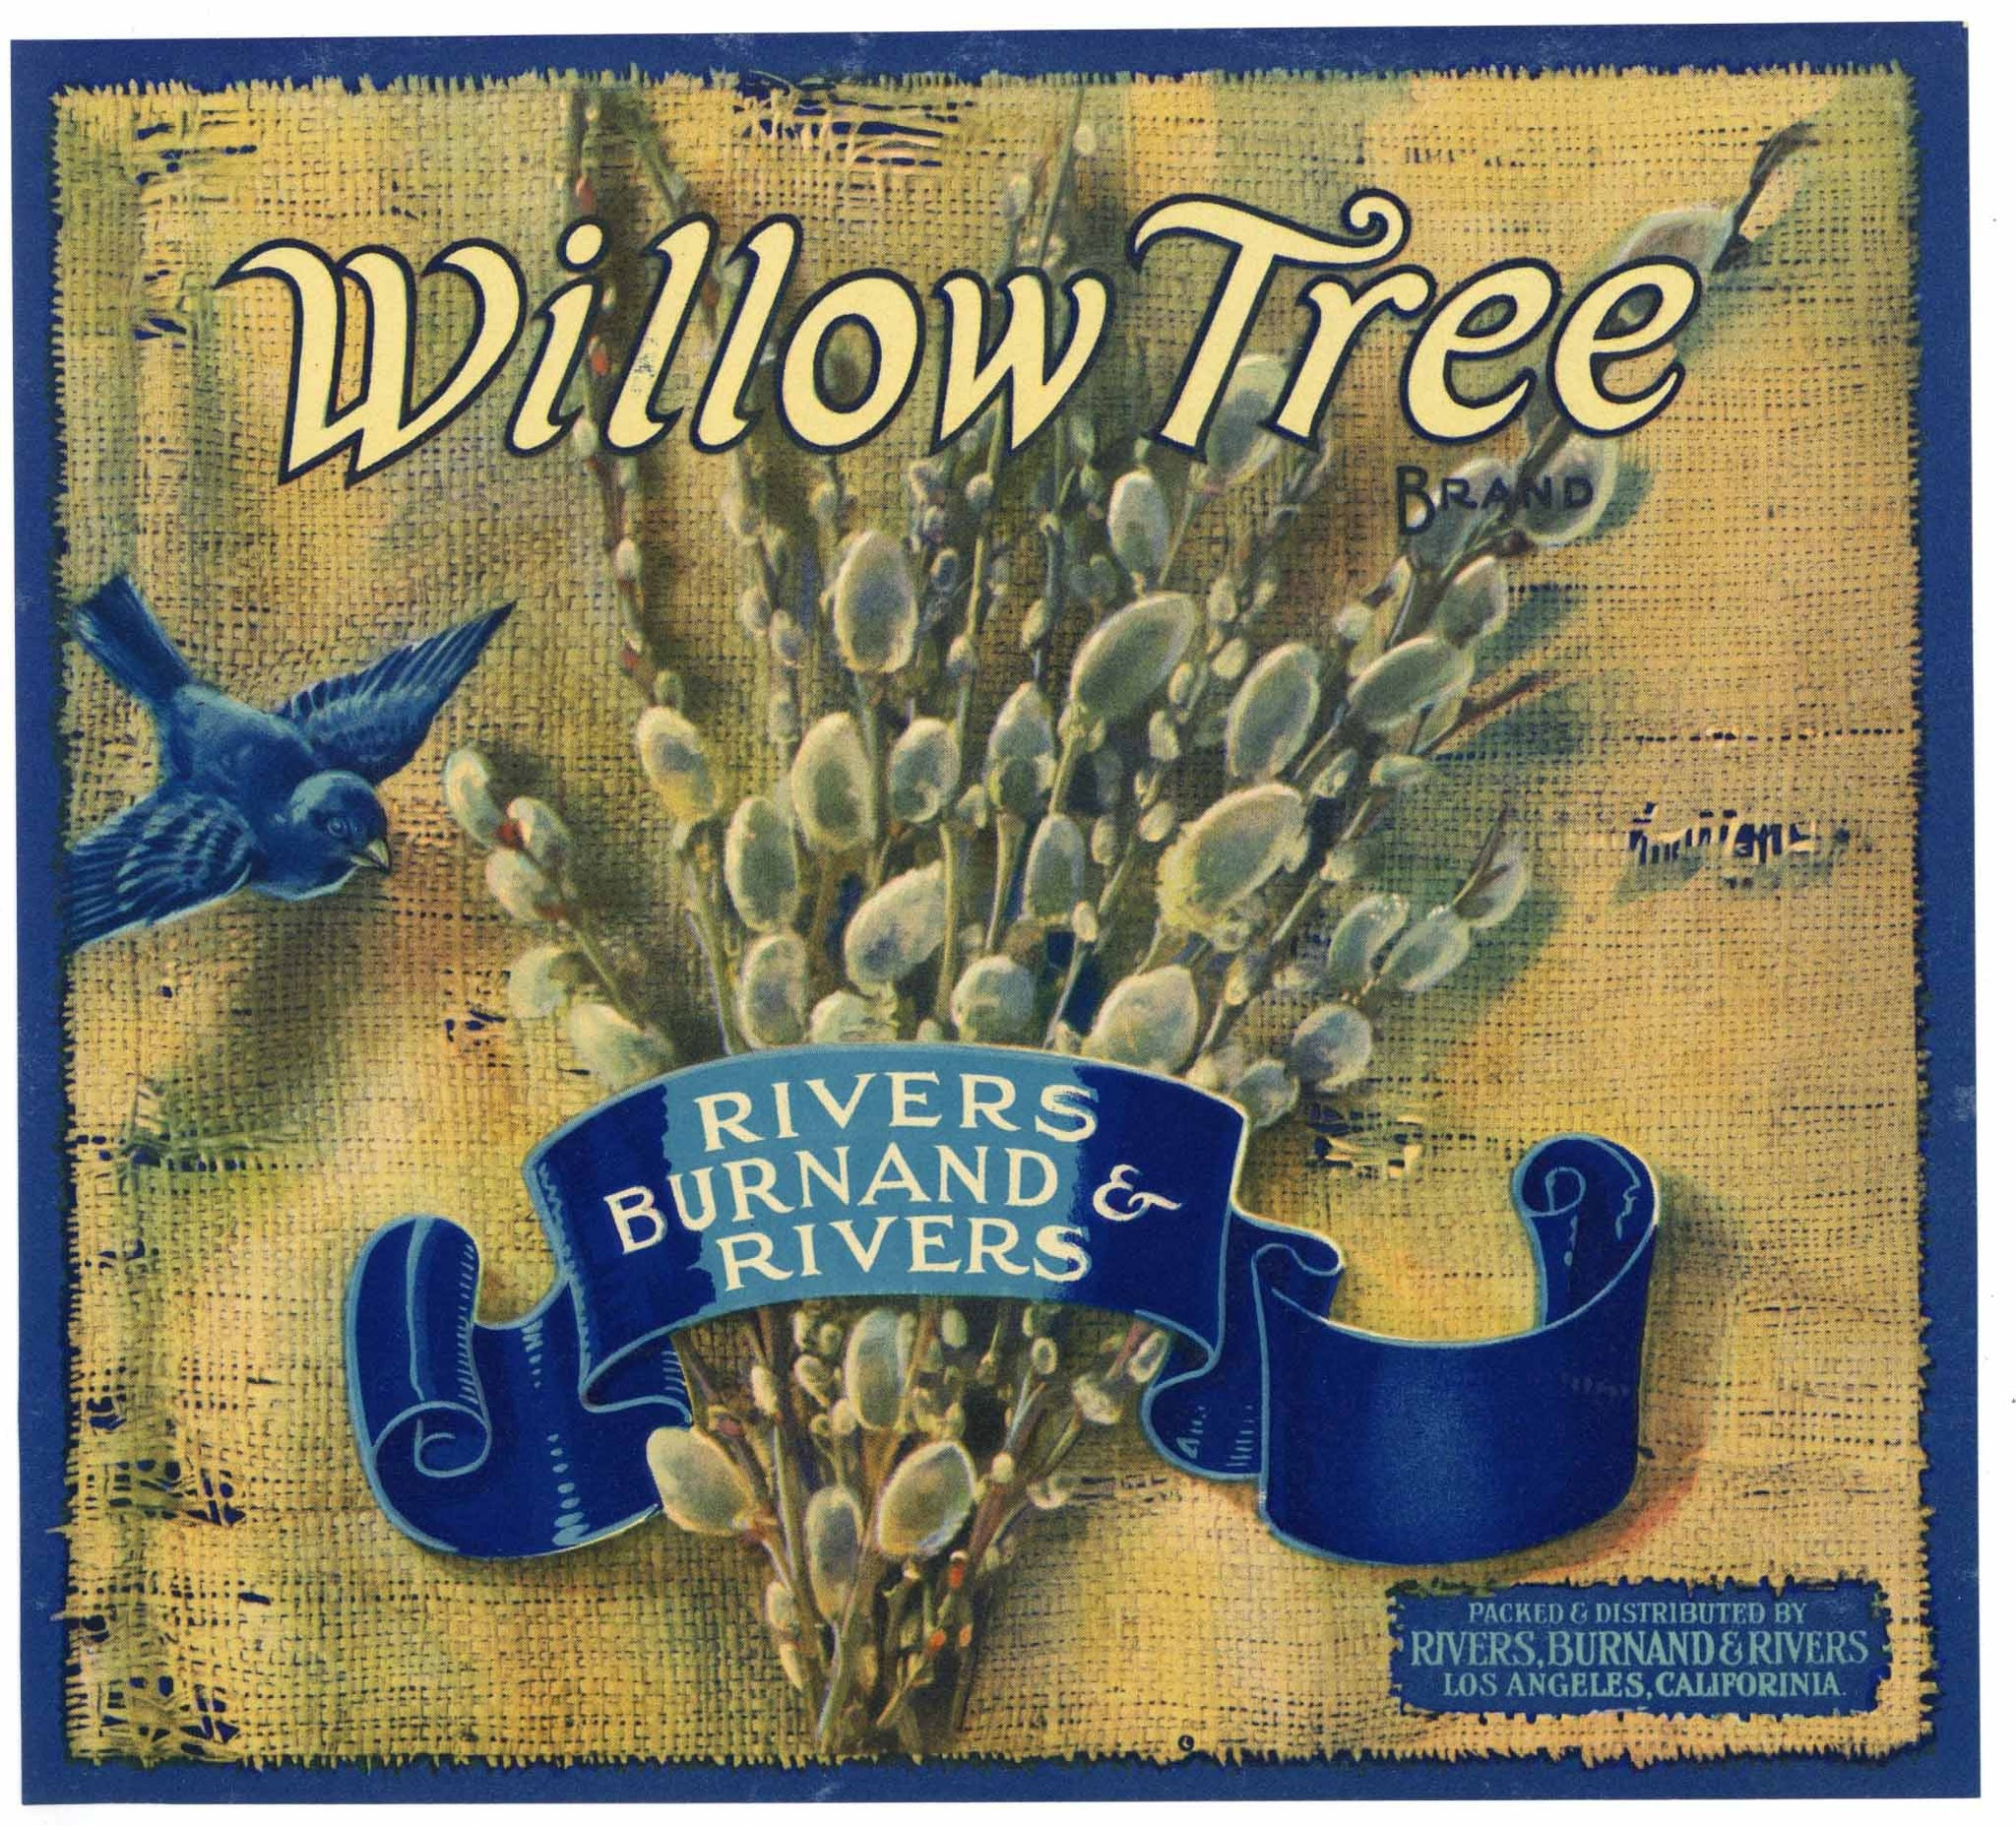 Willow Tree Brand Vintage Apple Crate Label, blue